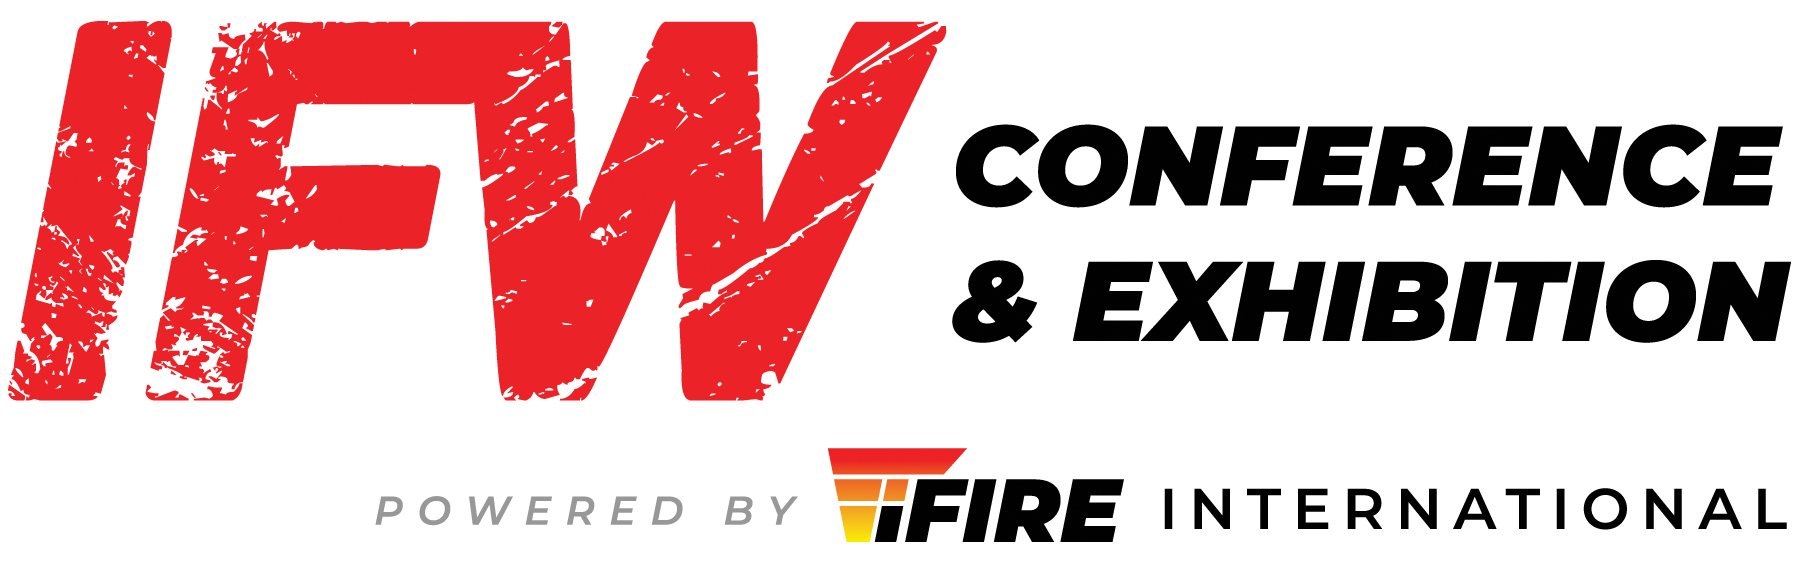 Industrial Fire World Conference & Exposition